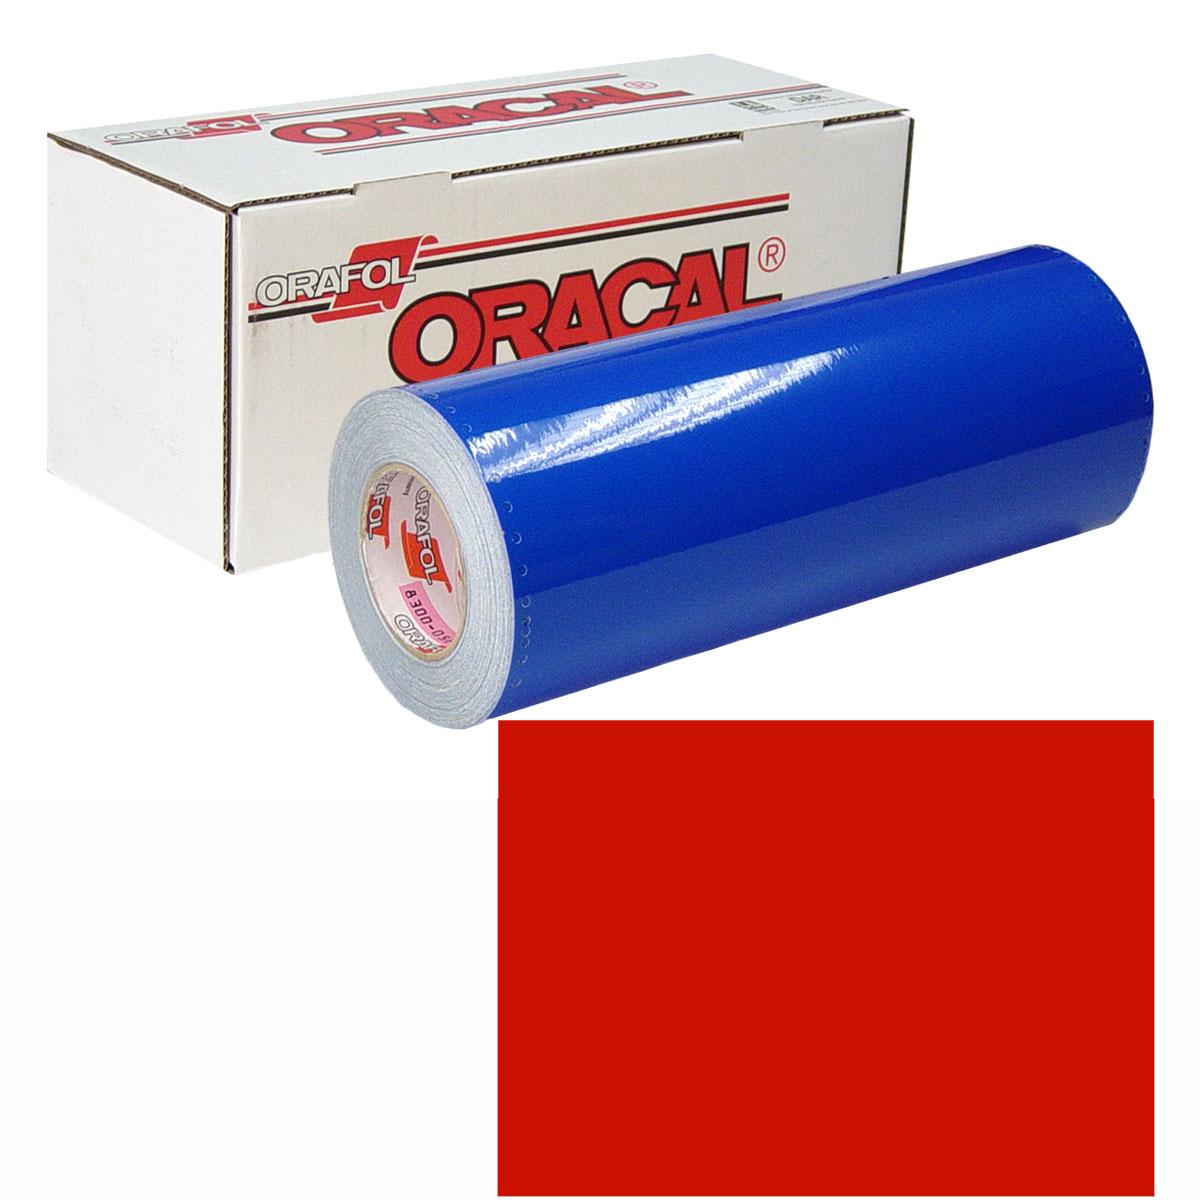 ORACAL 631 15In X 10Yd 032 Light Red